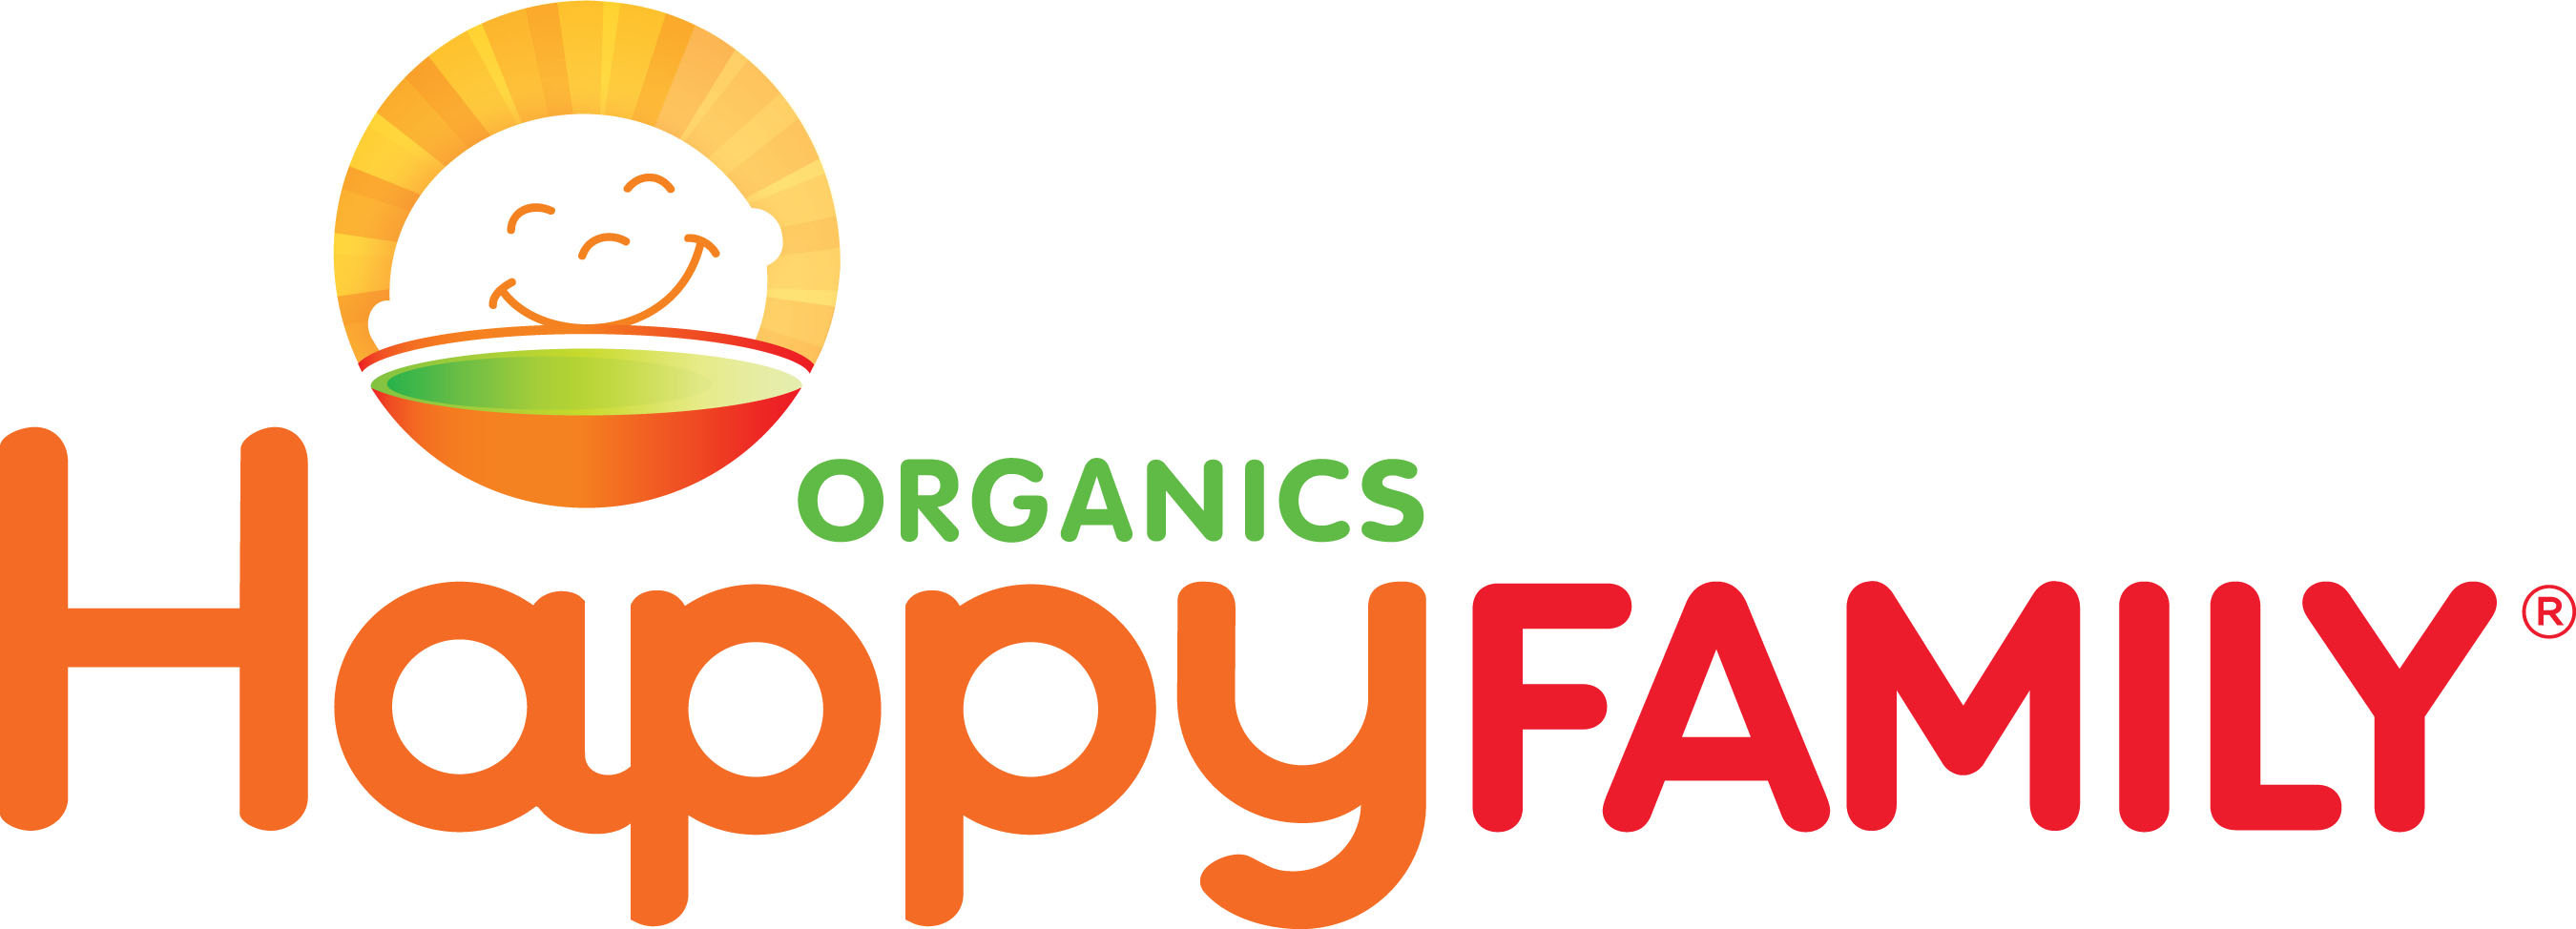 Happy Family Organics Introduces Clearly Crafted Jars